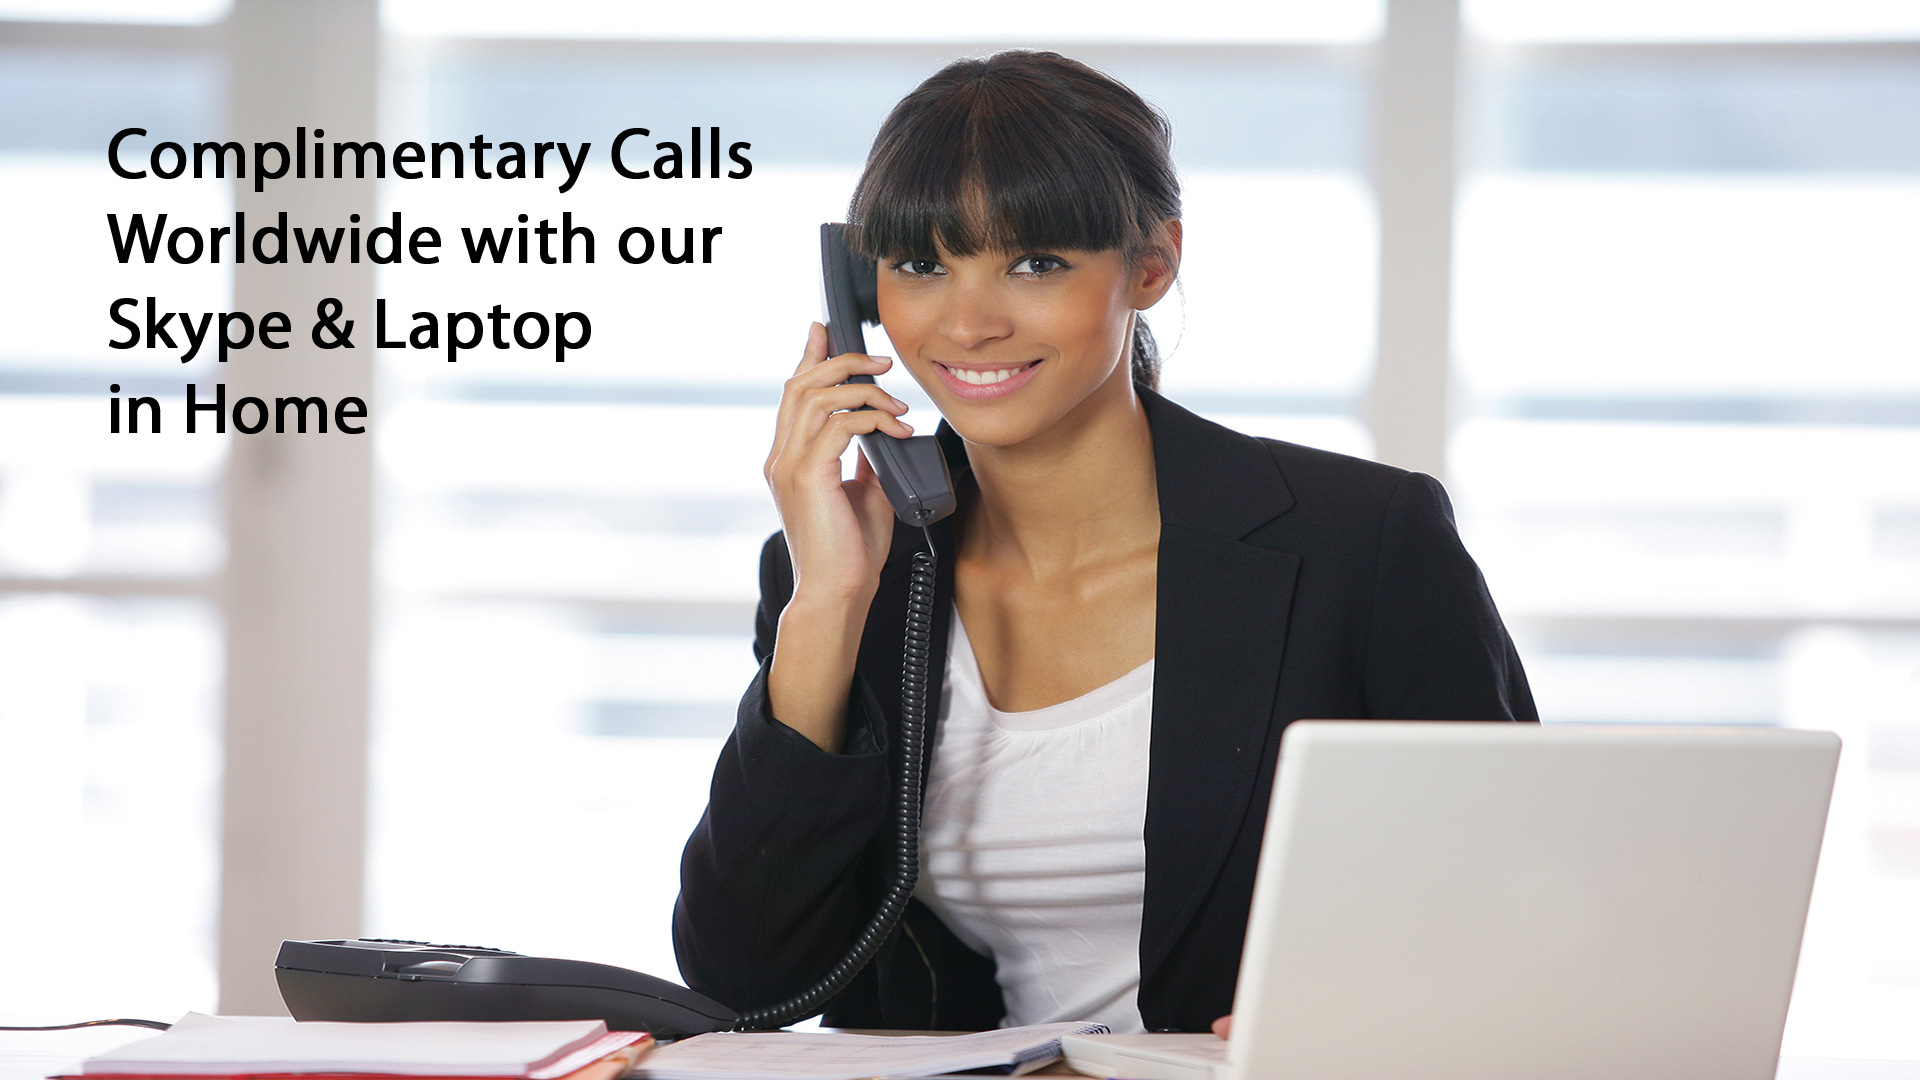 Complimentary Calls